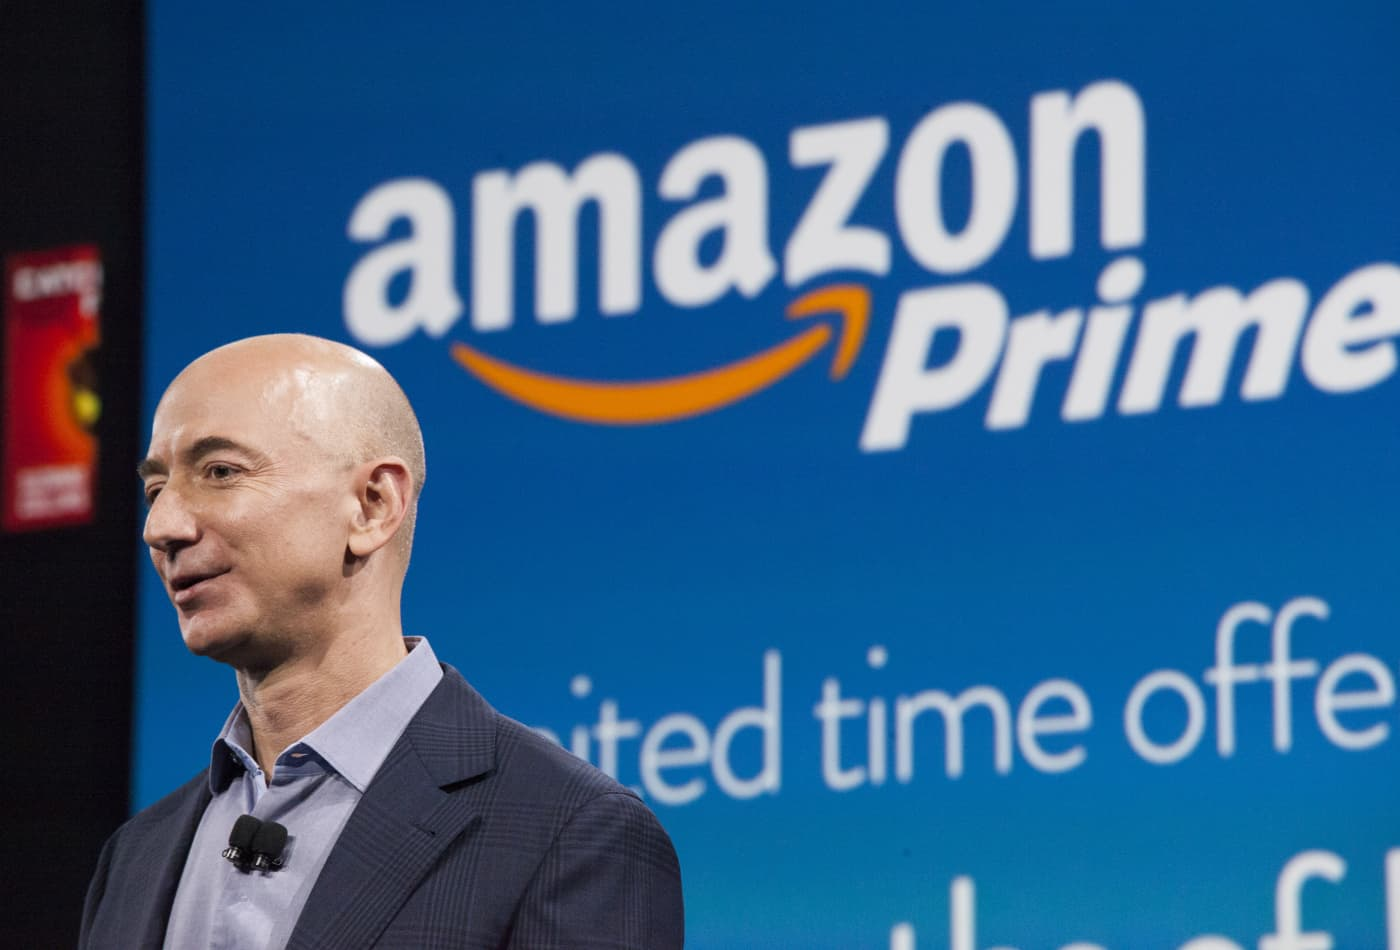 Amazon is hiring 5,000 remote workers this year — but there's a catch